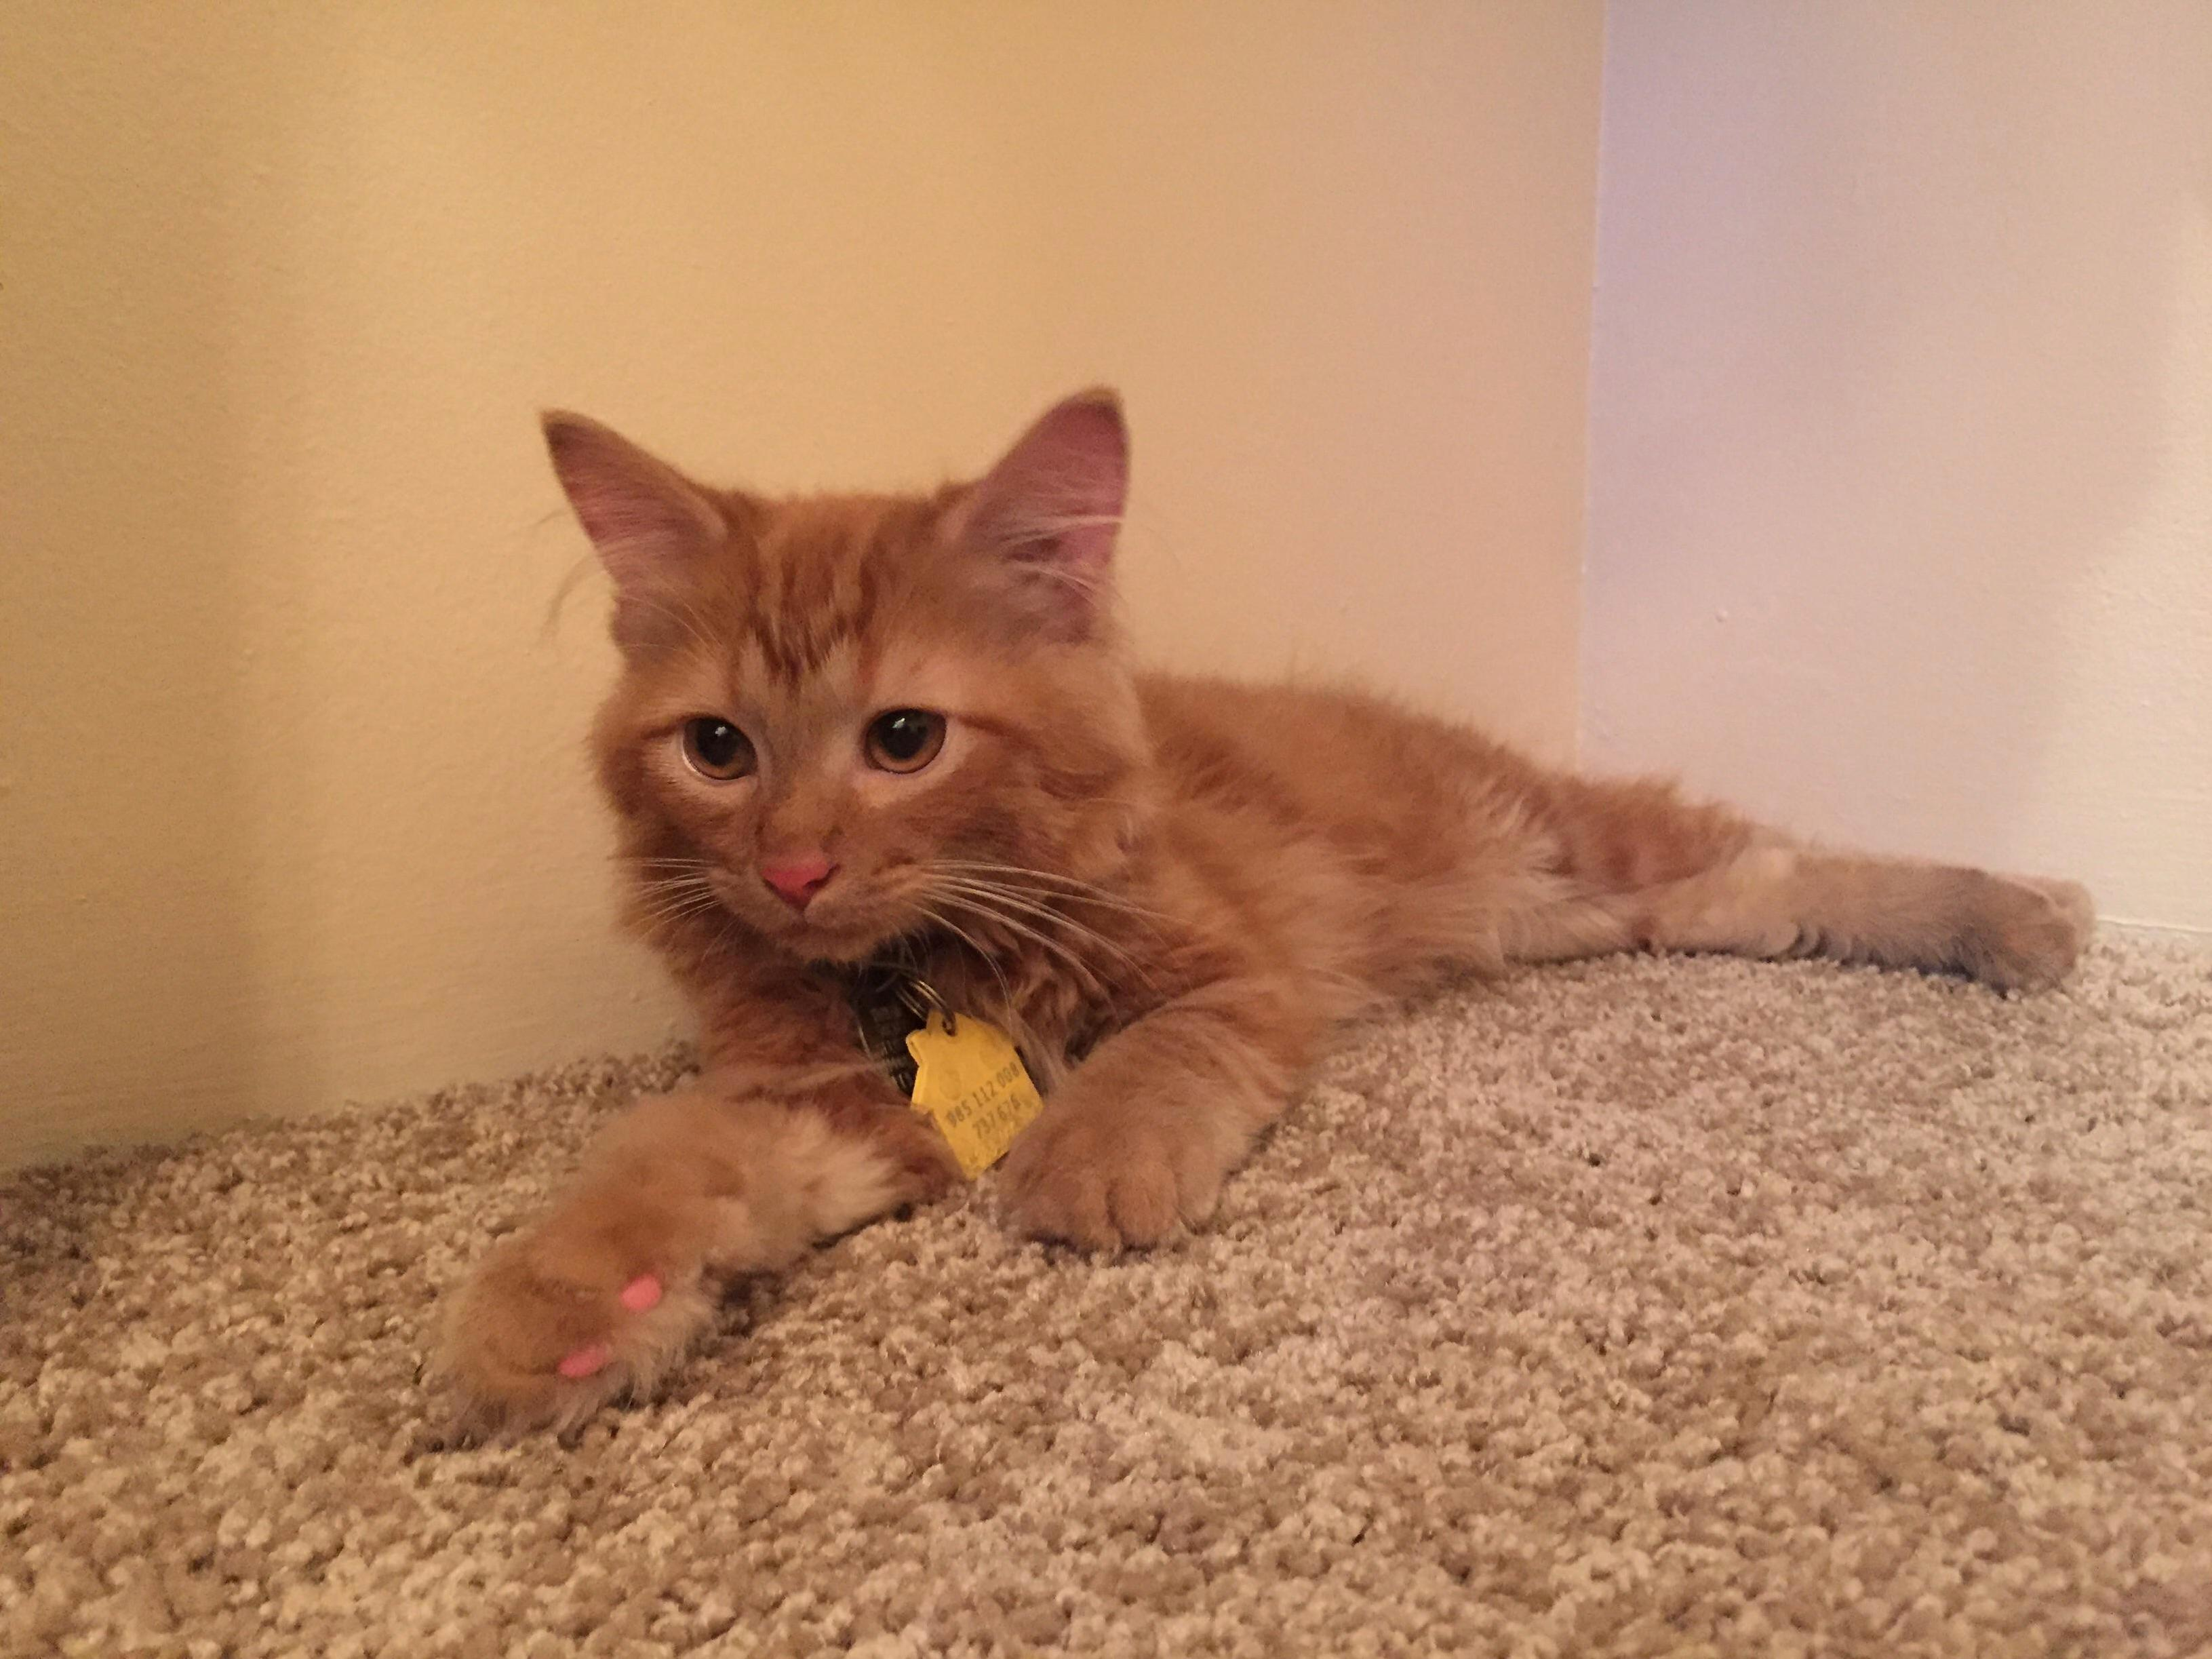 Adopted this little ginger a bit over a week ago. its amazing how close me and omar have gotten already.